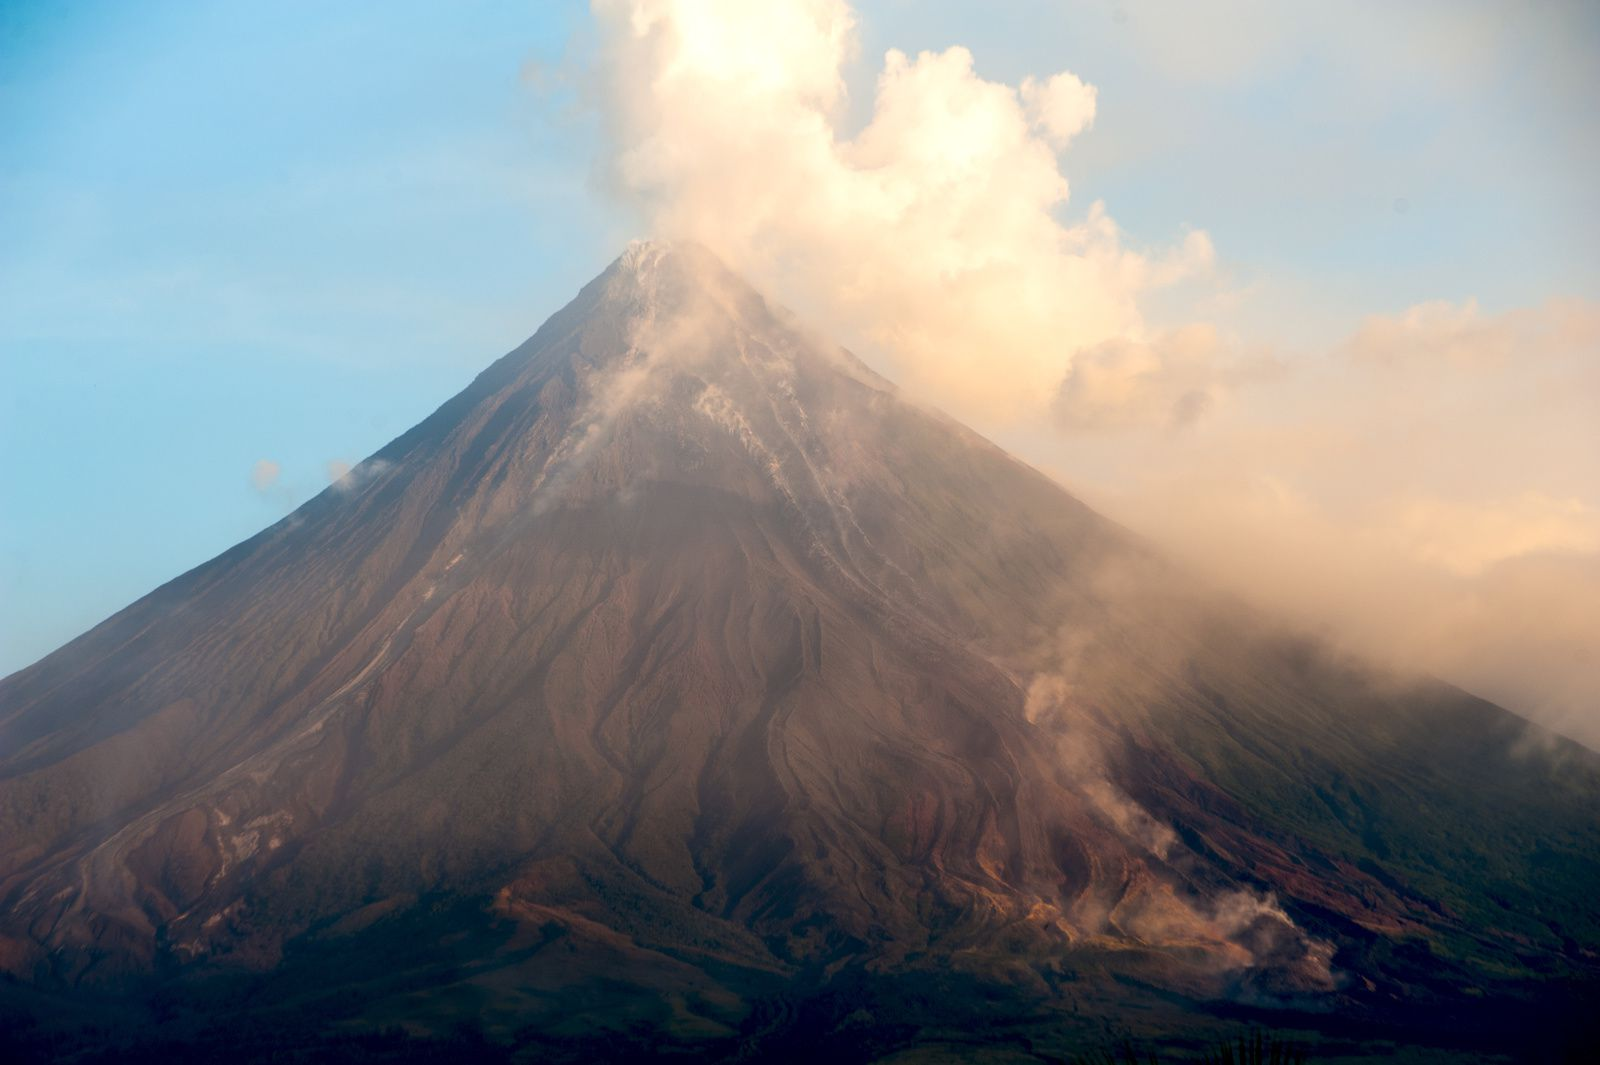 Mayon - early February 2018 activity - photo archives Thierry Sluys